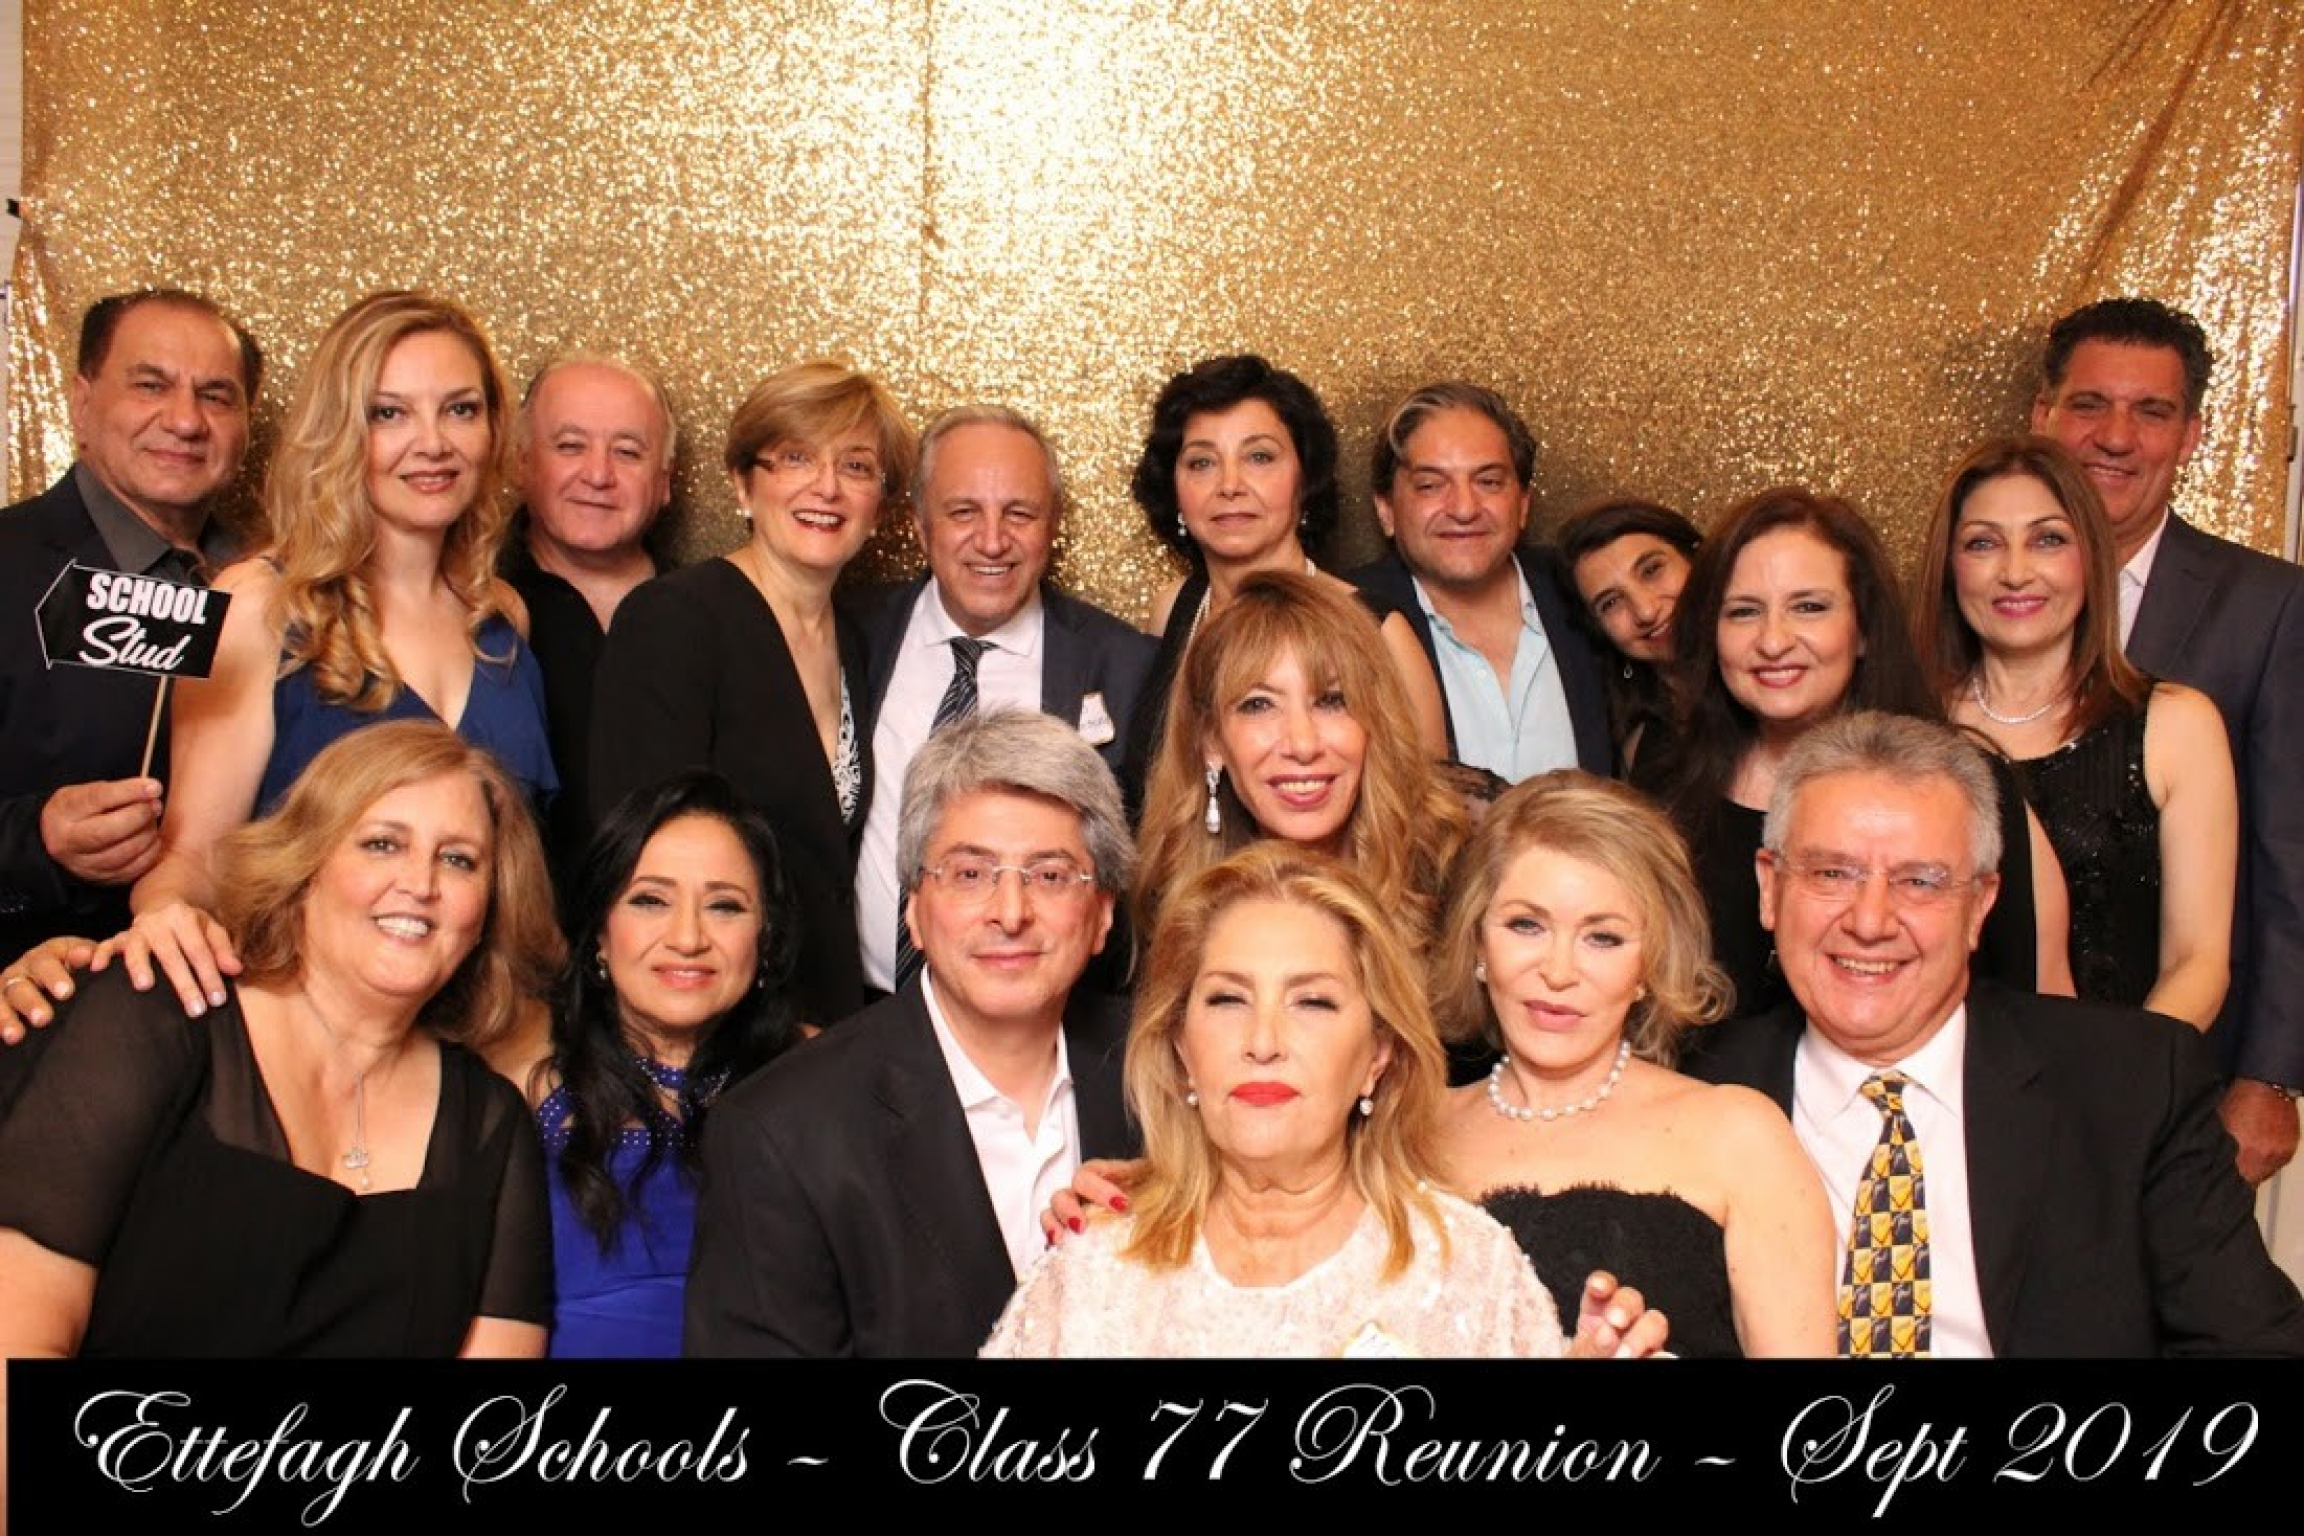 Former Ettefagh School classmates settled around the United States, Canada and Israel after leaving Iran around the time of the 1979 Islamic Revolution. On Sept. 1, 2019, about 50 alumni came from around the world to attend their first formal high school